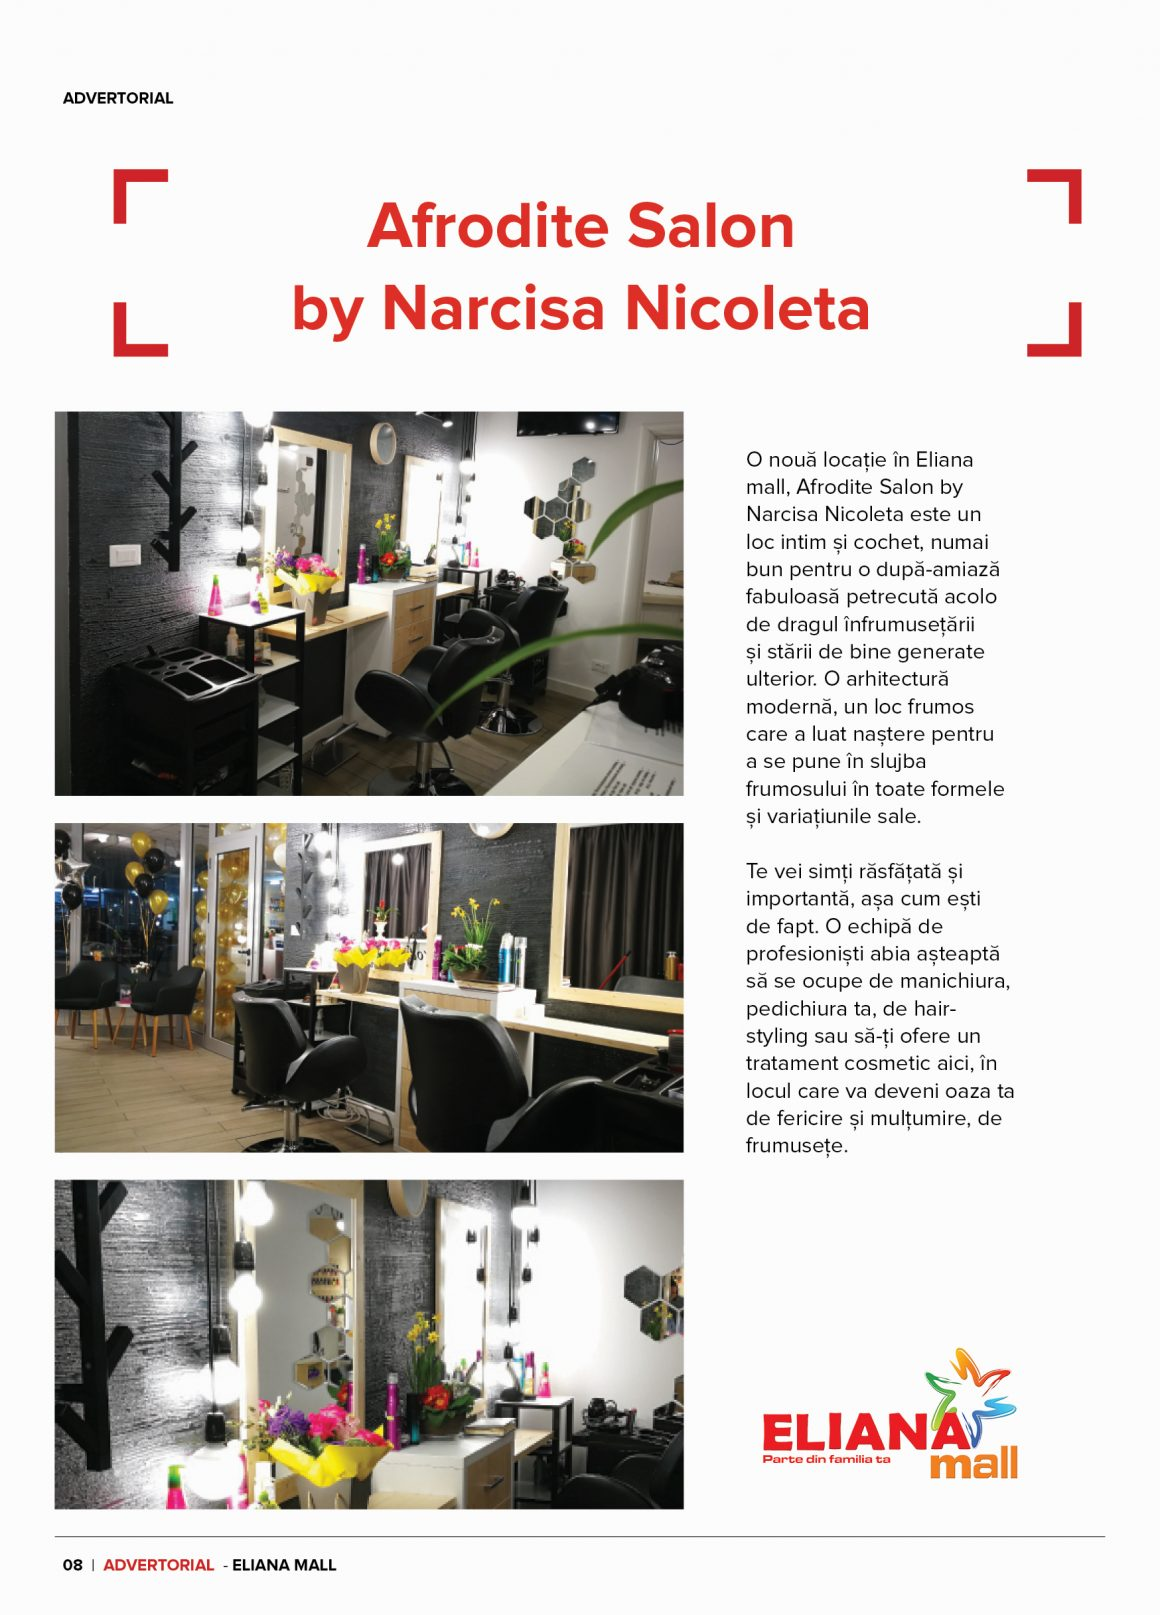 Afrodite Salon by Narcisa Nicoleta